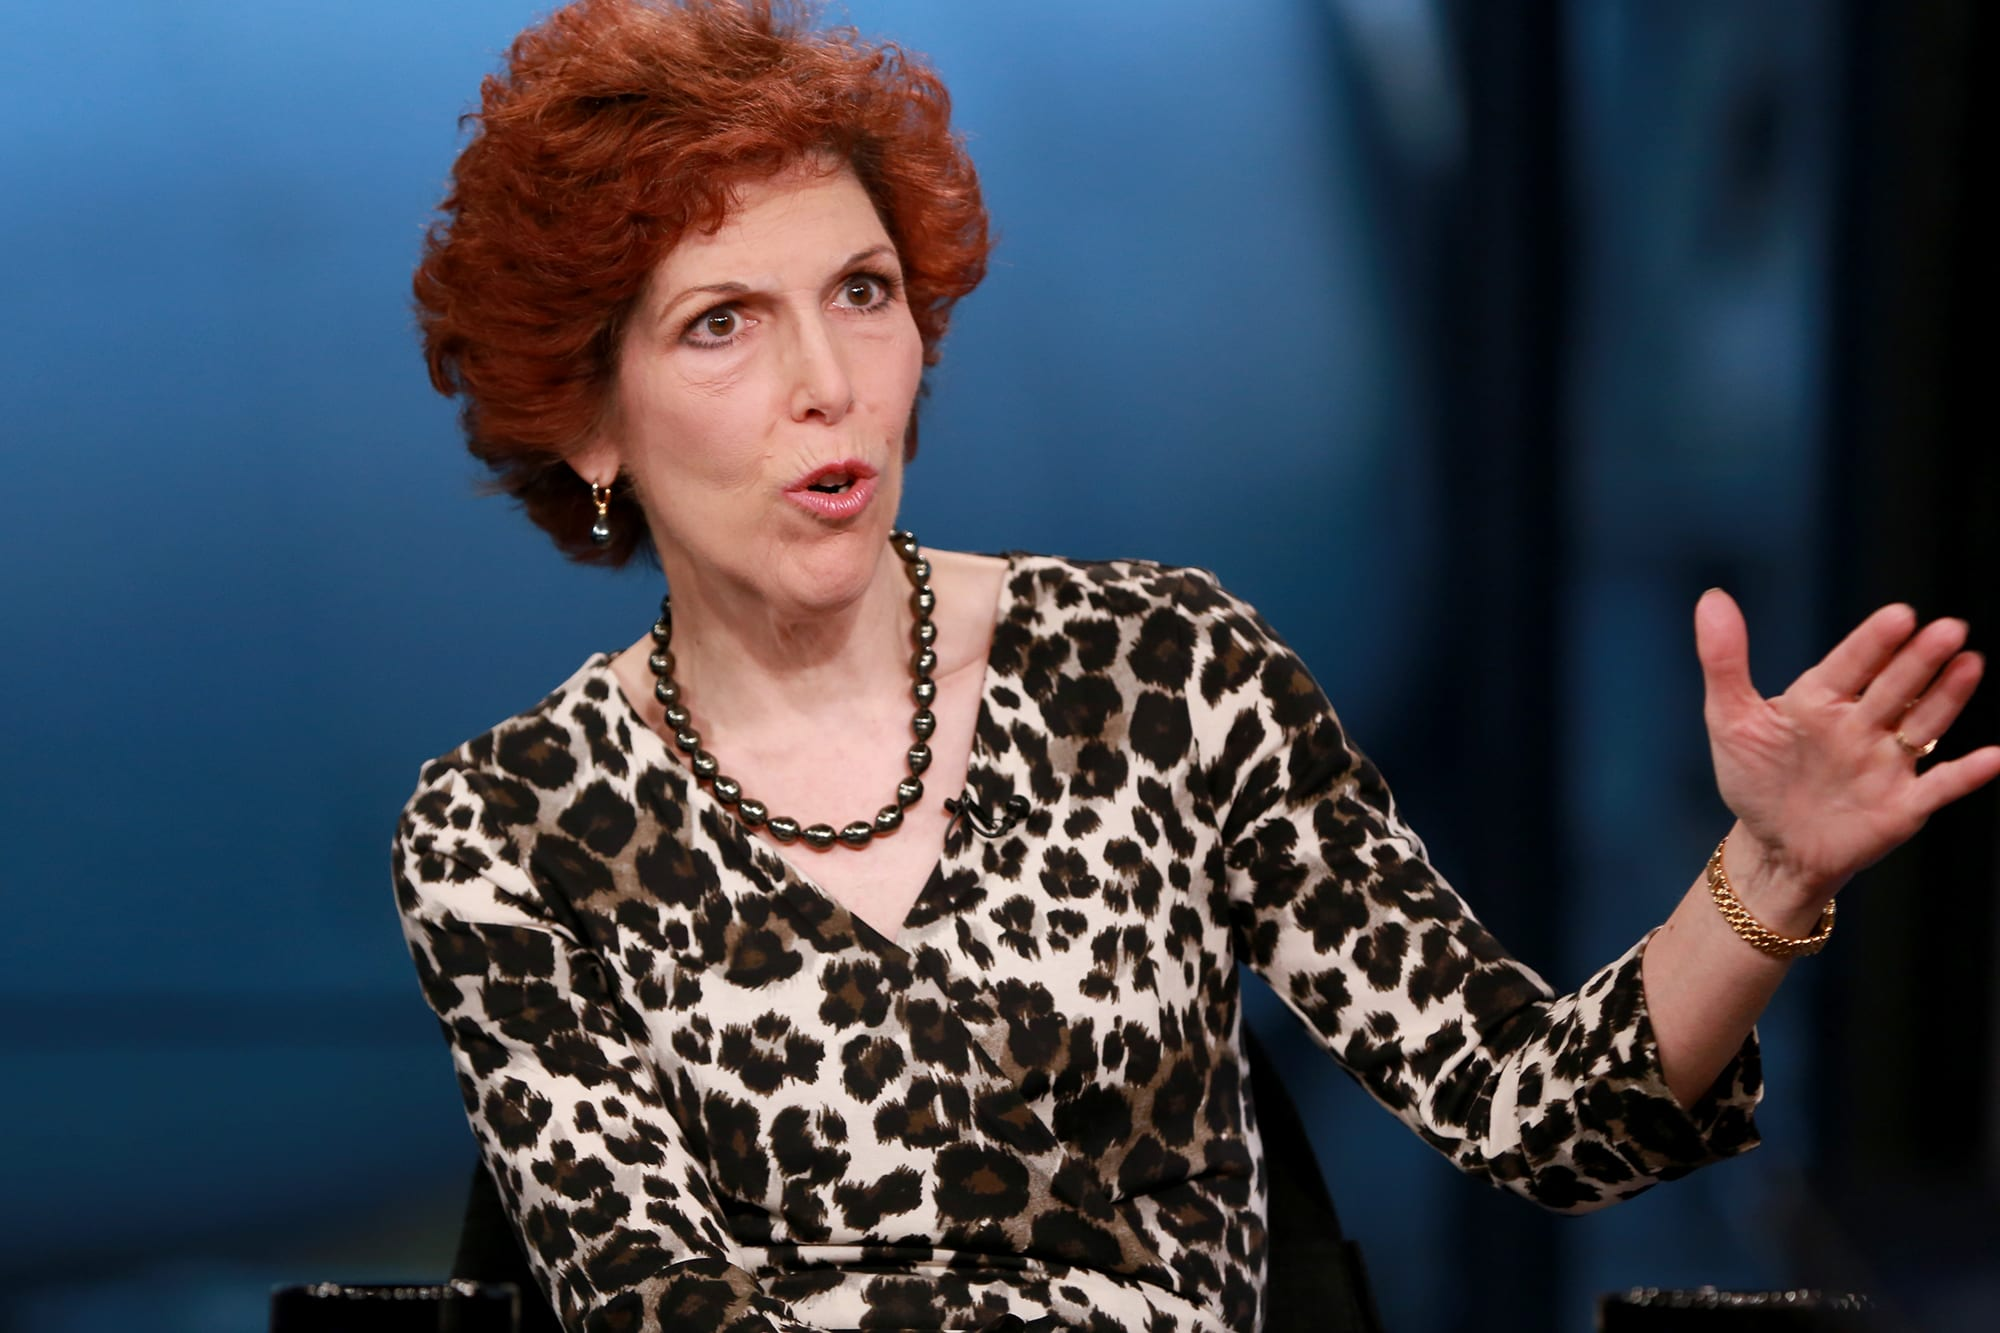 Fed's Mester explains 'no' vote on rate cut, says she would back commercial paper help